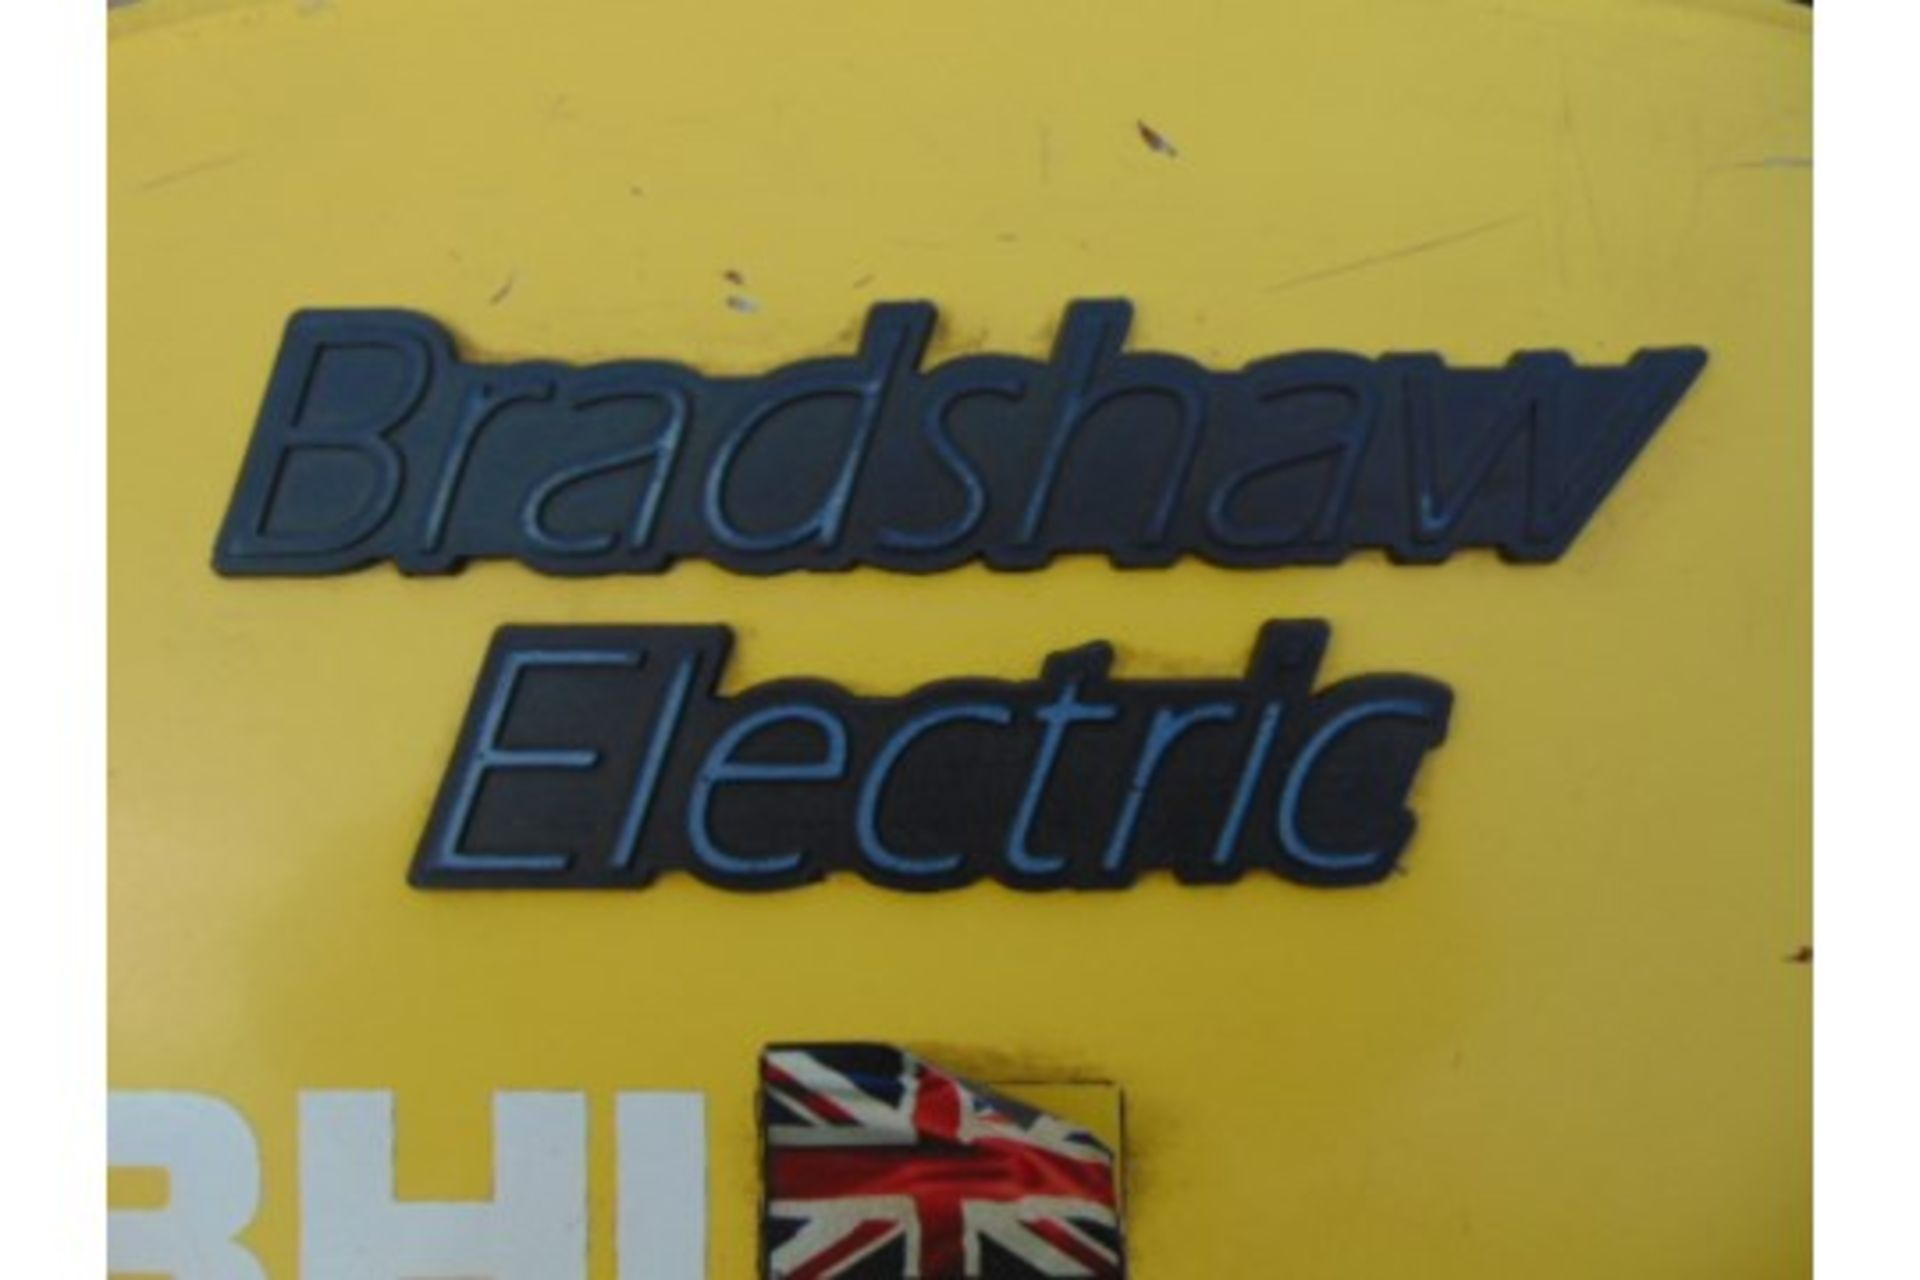 Lot 25853 - 2010 Bradshaw T5 5000Kg Electric Tow Tractor c/w Battery Charger